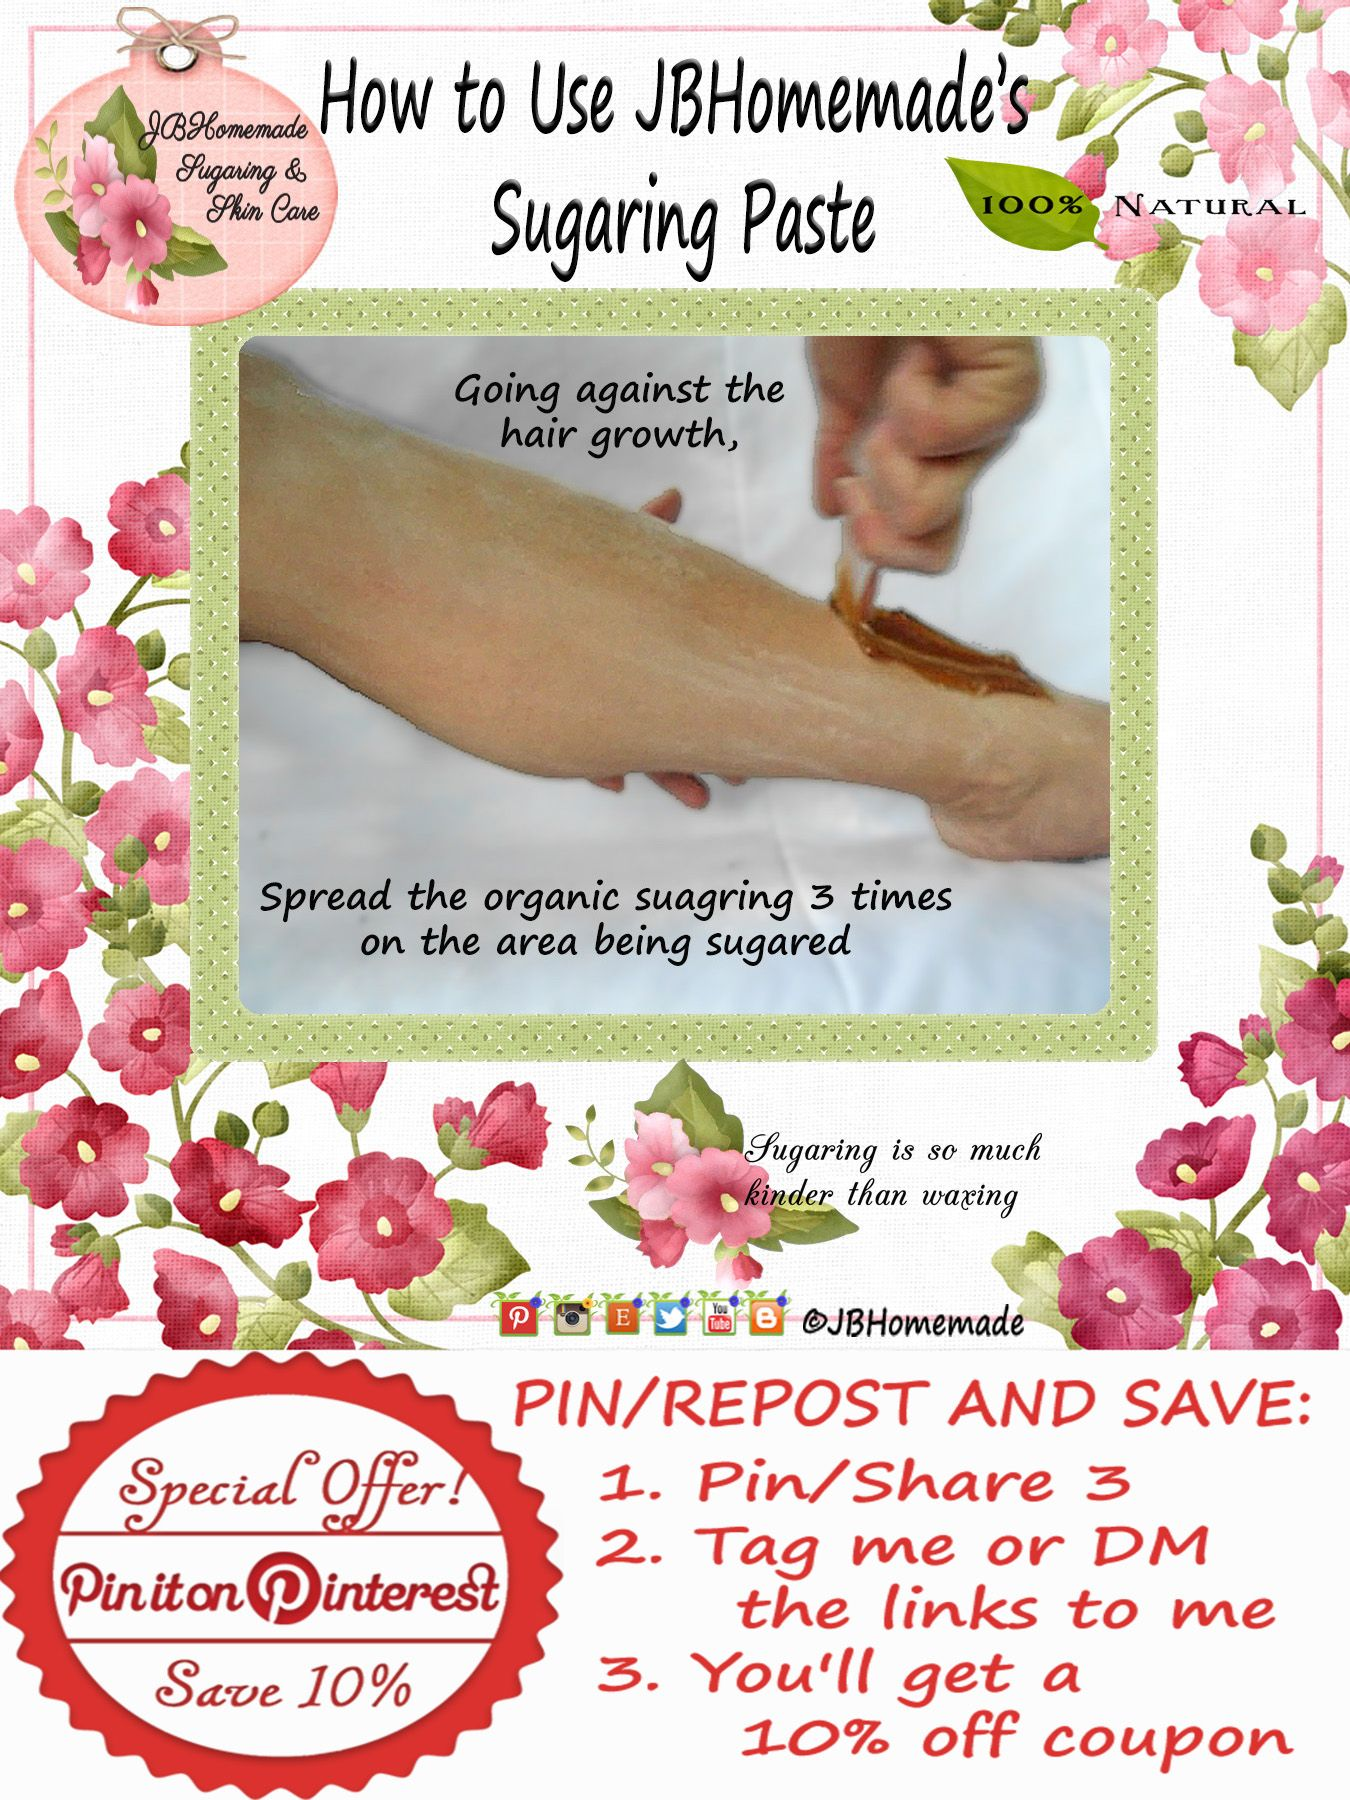 How To Use Jbhomemade Organic Sugaring Paste Going against the growth, spread the organic sugaring 3 times on the area to be sugared.  PIN/REPOST & SAVE: 1. Pin/Share 3 2. Tag me / DM the links to me 3. Get a 10% off coupon #jbhomemade #sugaring is an ancient method of hair removal & is considered the best & most beneficial natural wax & shave alternative